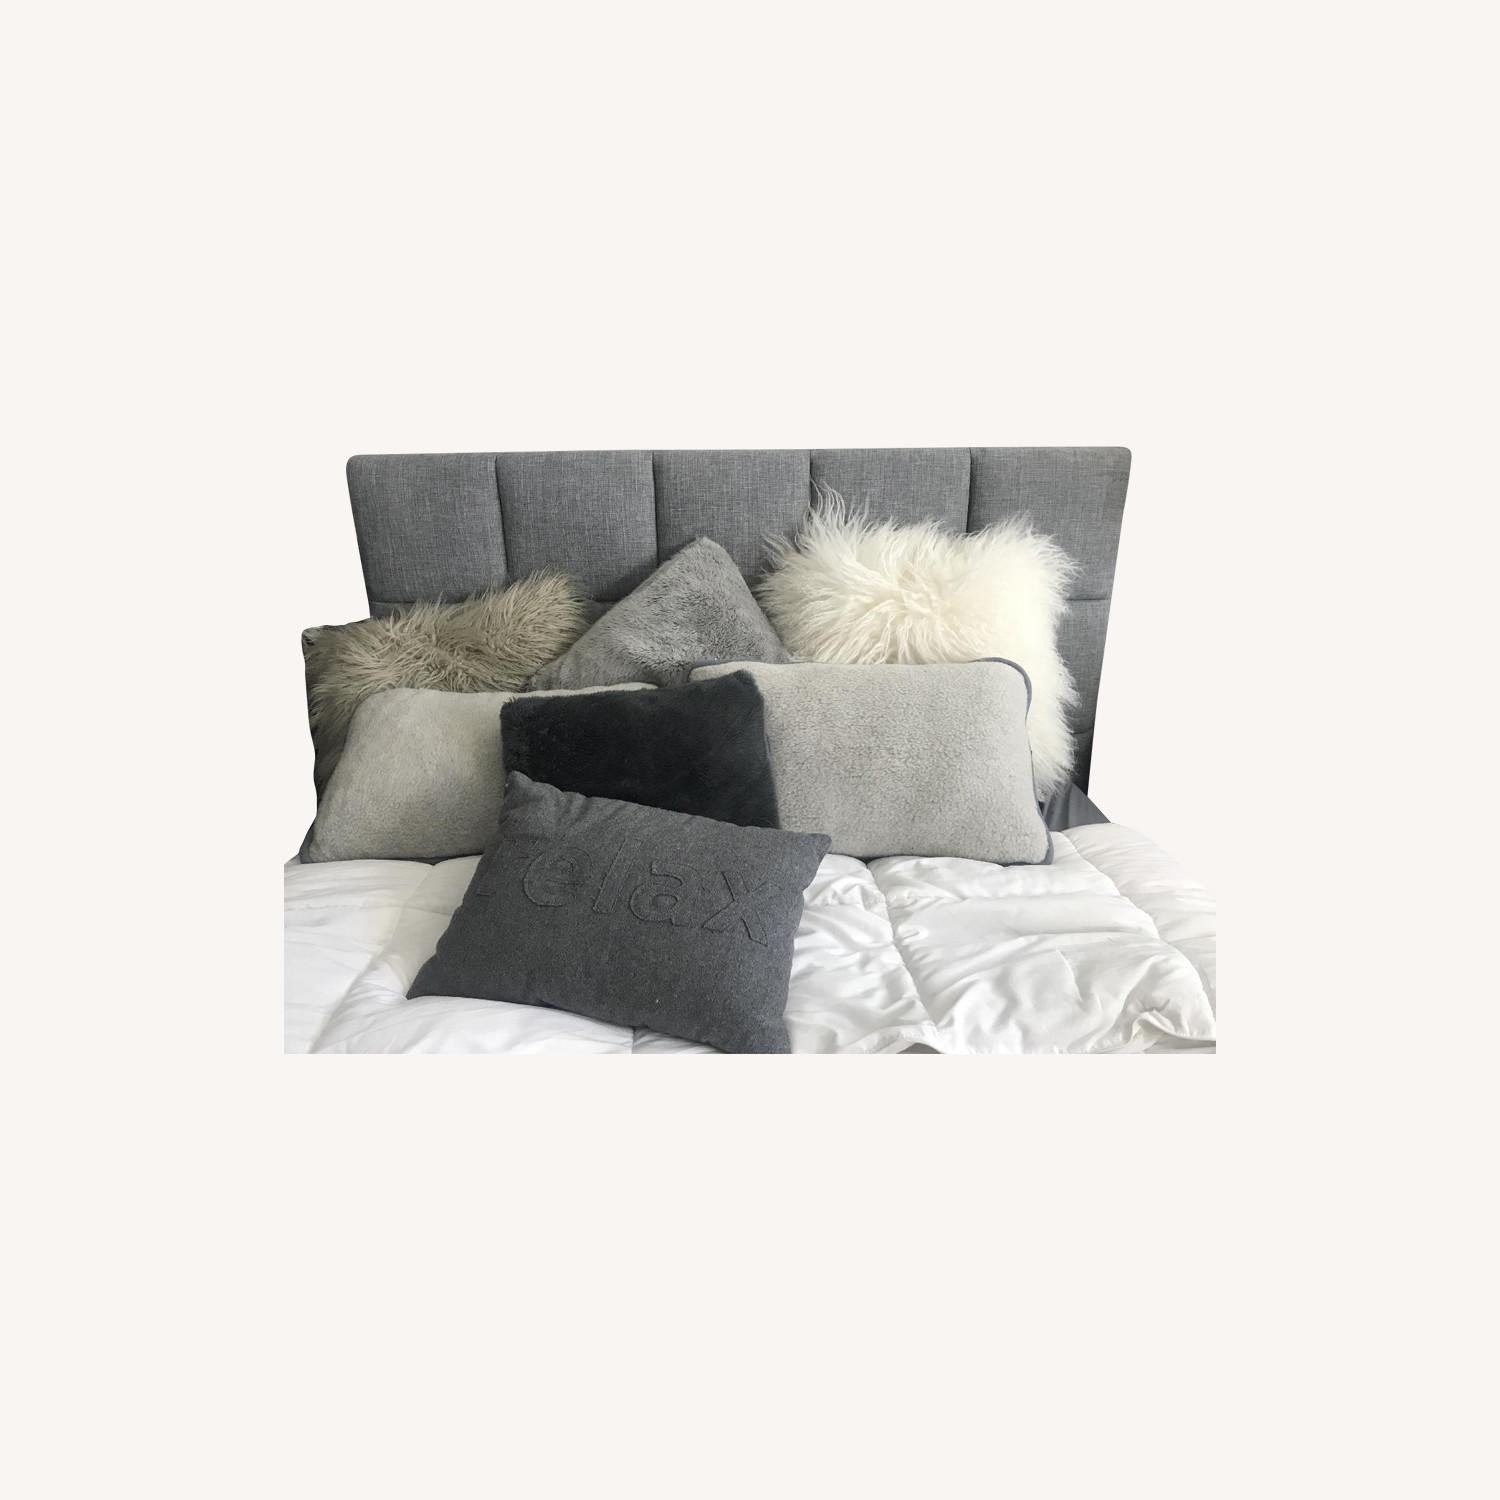 Grey Upholstered Full Size Bed w/ Headboard - image-0